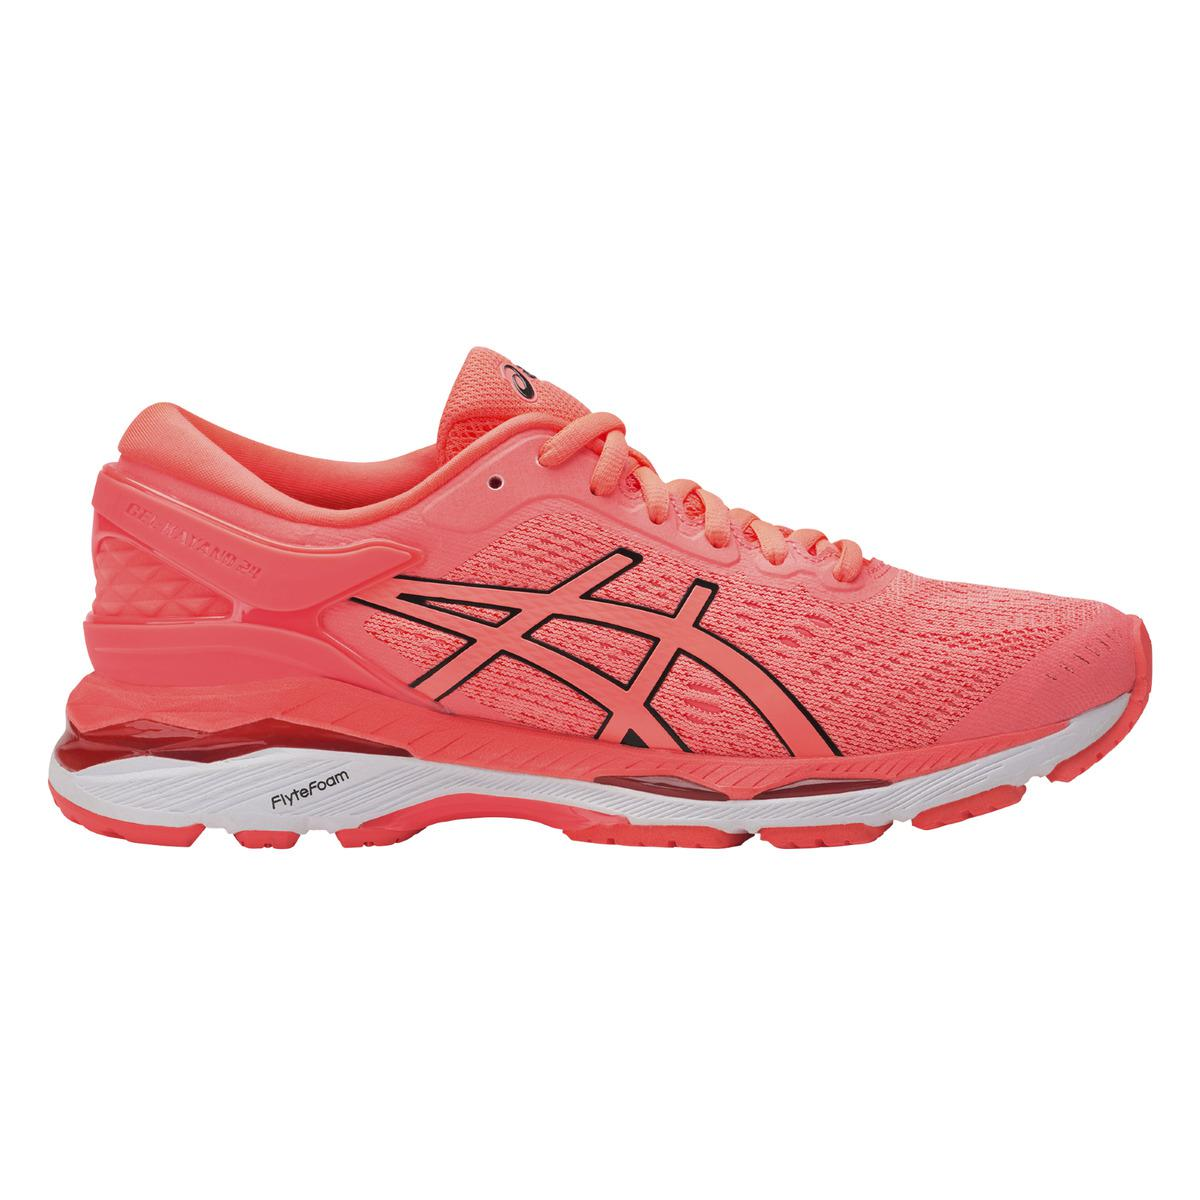 Asics Gel kayano 23 Running Shoe Lyst